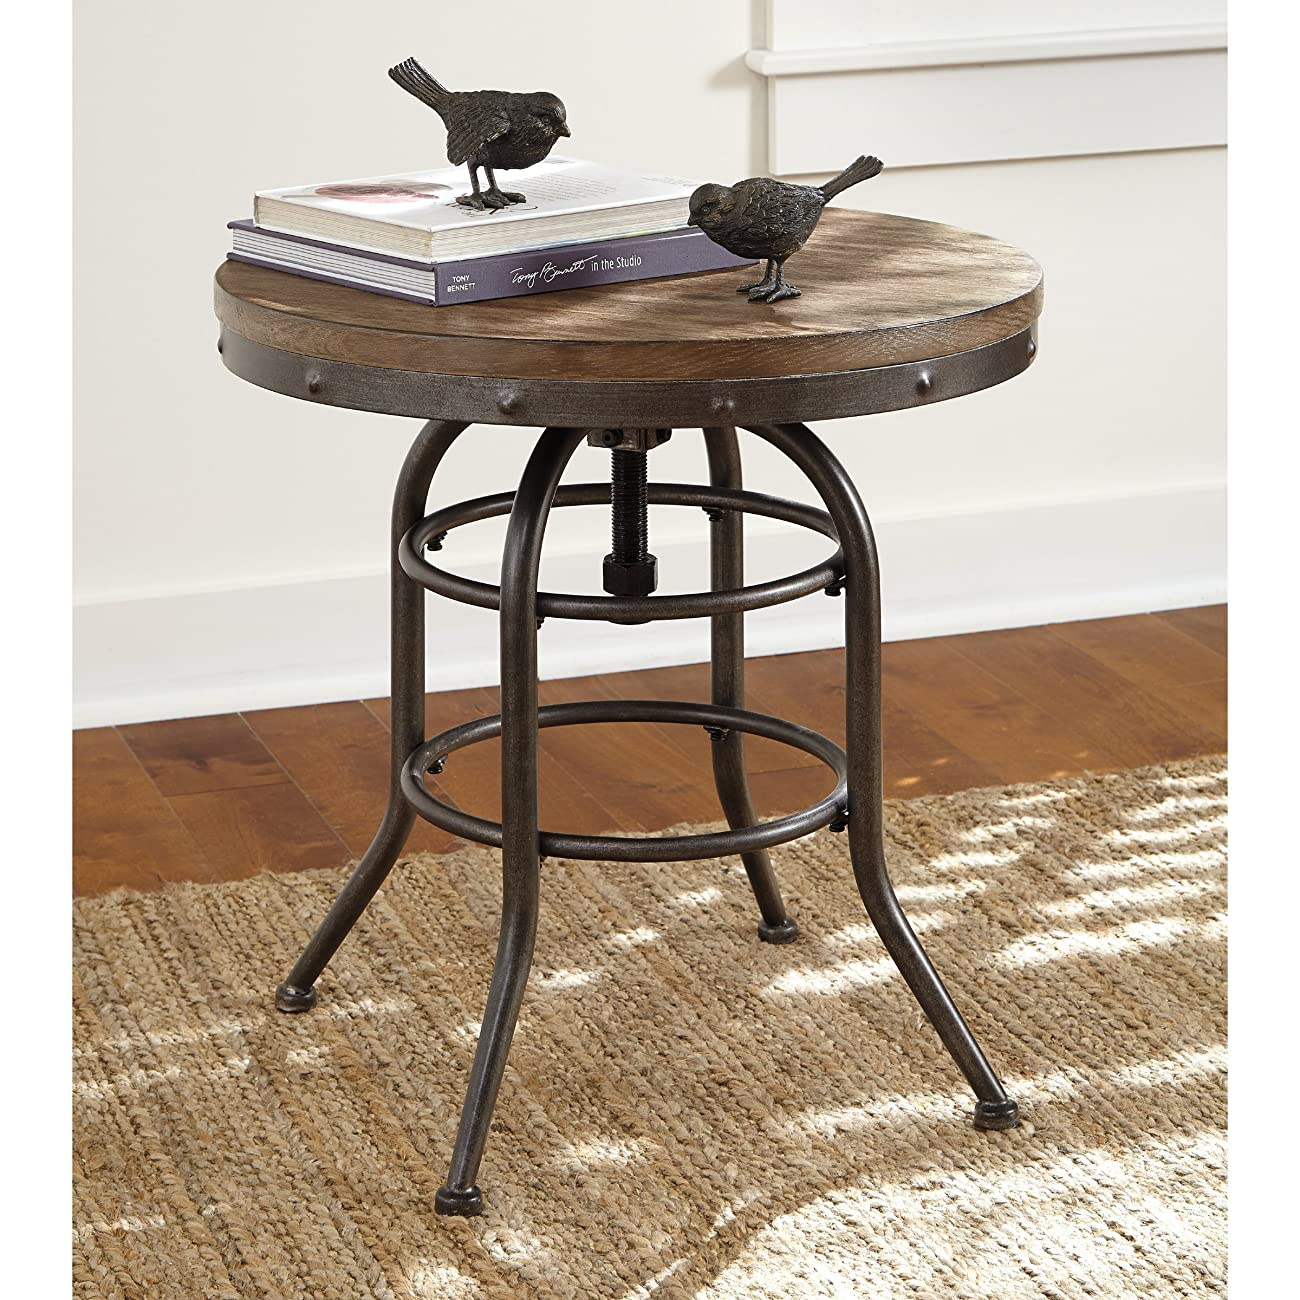 Spin Top For Adjustable Height Vennilux Chair Side End Table -Grayish Brown 0